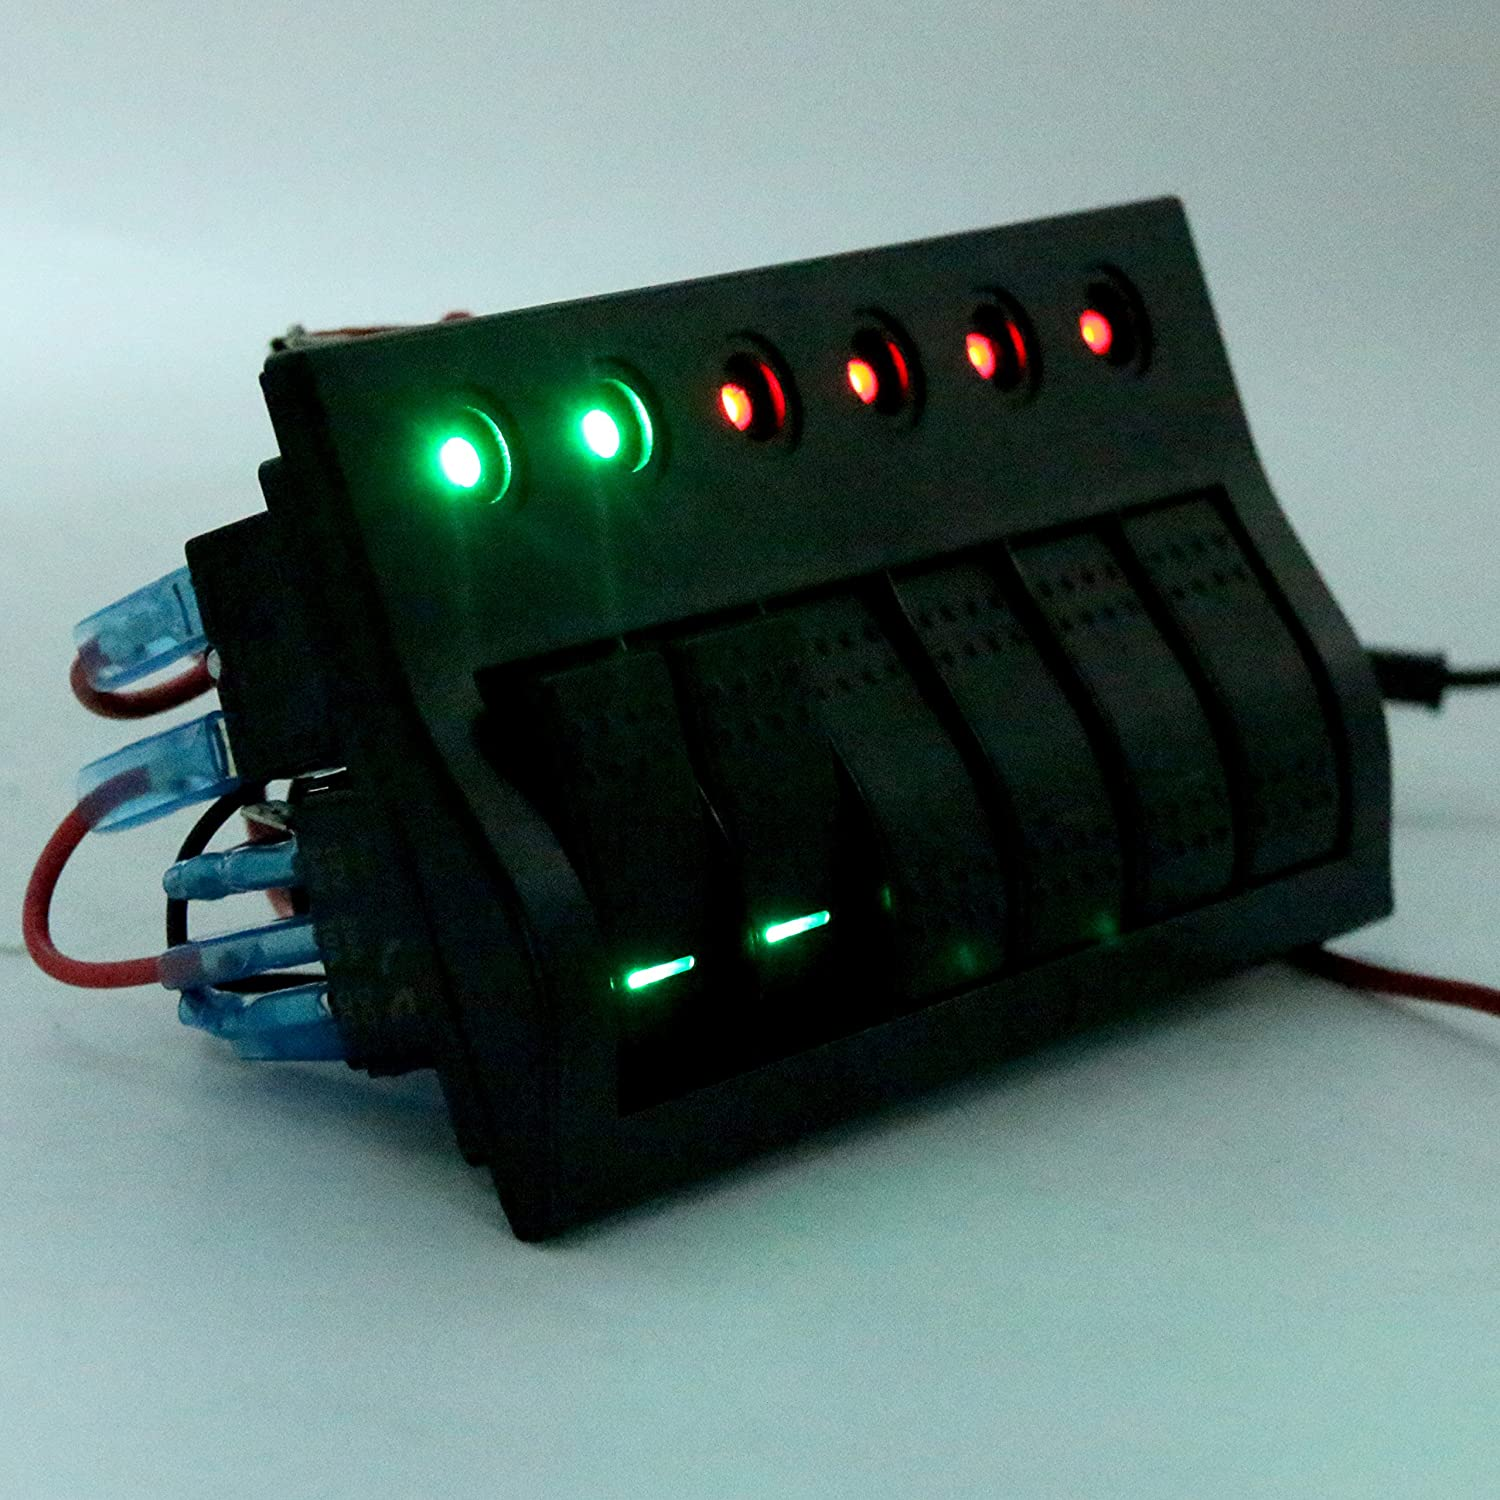 Amarine-made 6 Gang Splashproof Waterproof Rocker Switch Panel Black with Red /& Green LED Indicators for Boat Marine Bridge Control 12v 24v PCB+LED Push Button Circuit Breakers Overload Protected